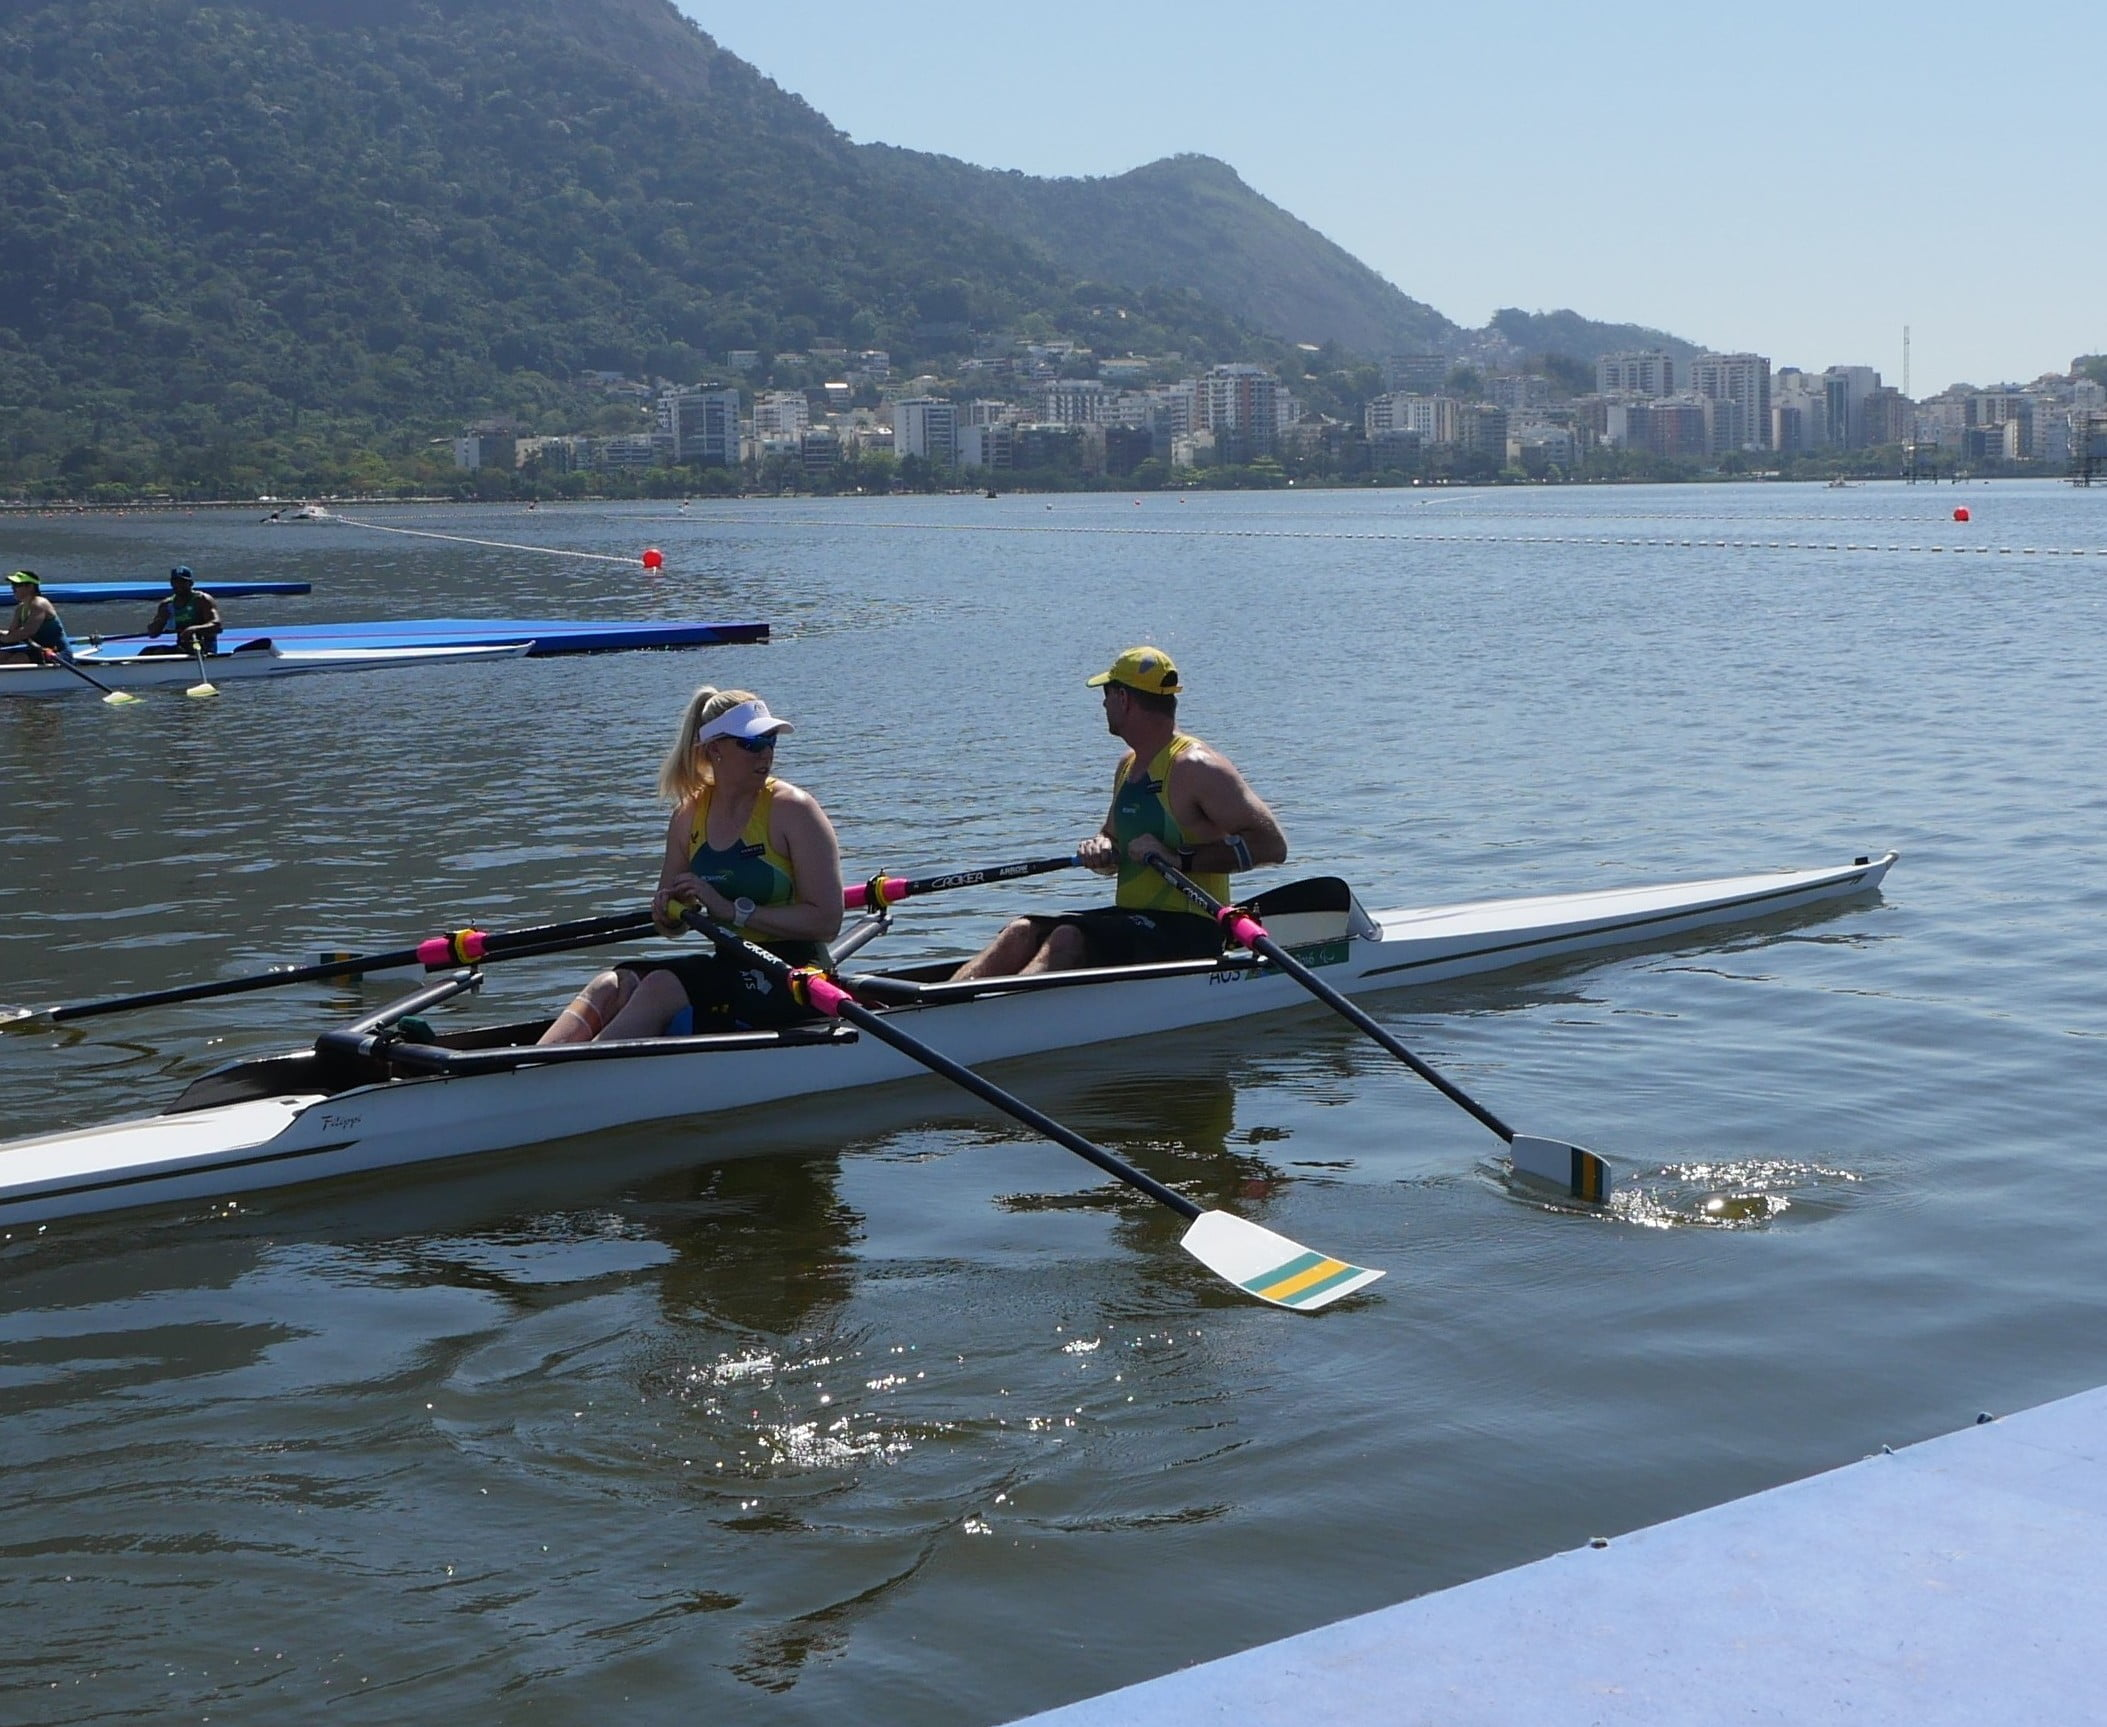 Rowing preview - day 2